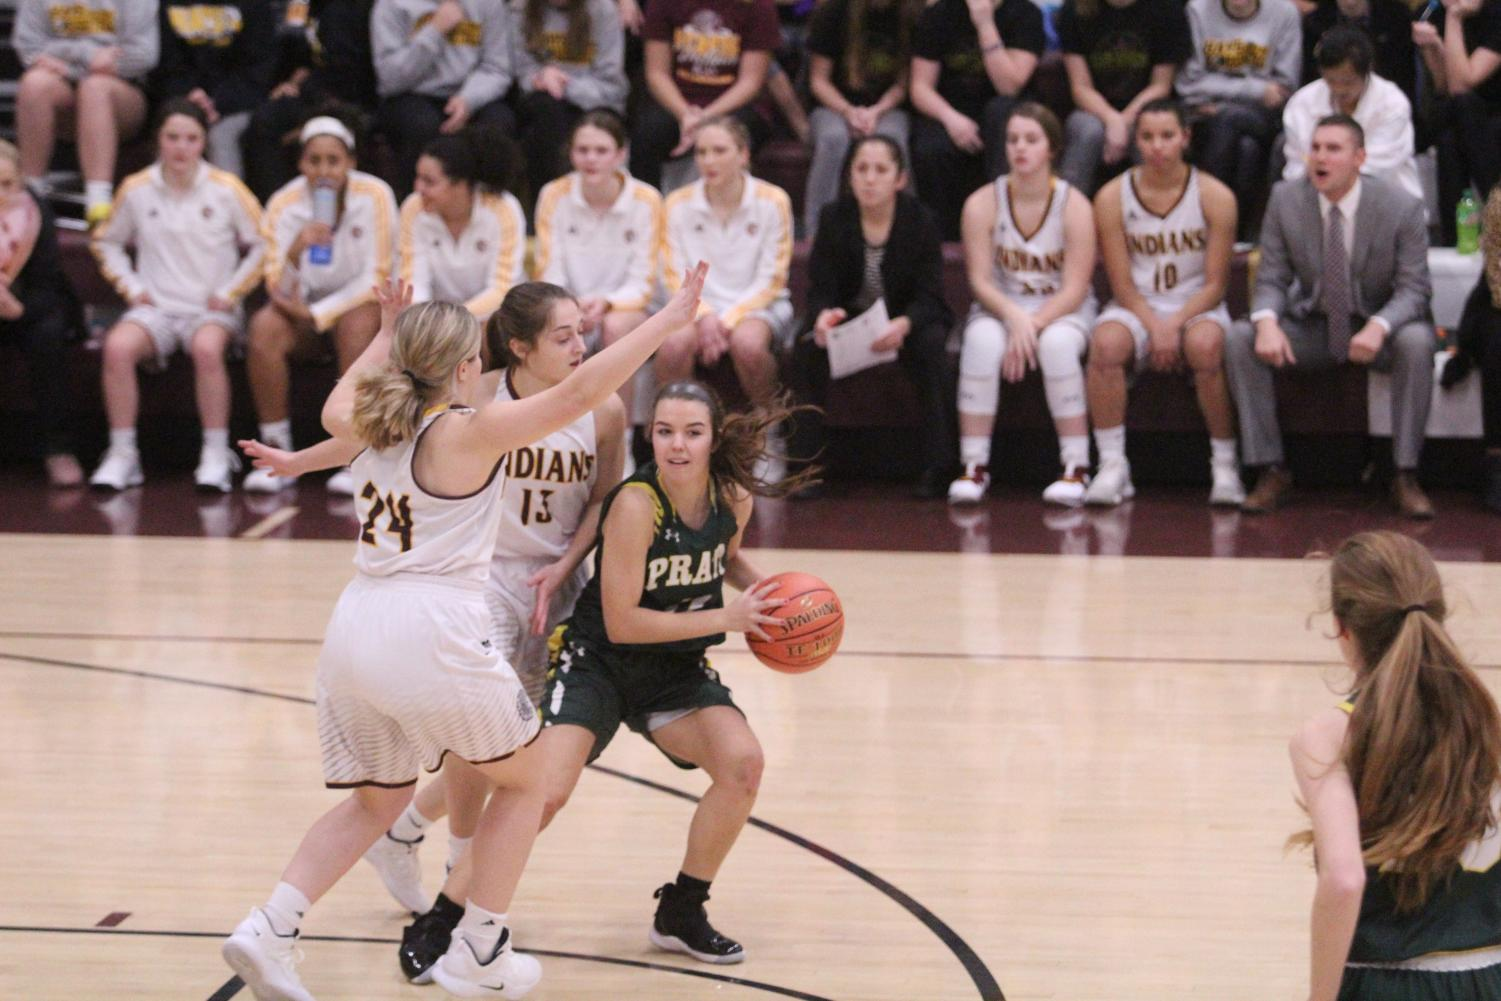 Seniors Kallie Leiker and Mattie Hutchsion block a player at a previous home game. The team is now 13-6 and will play the Abilene Cowboys on Feb. 22.